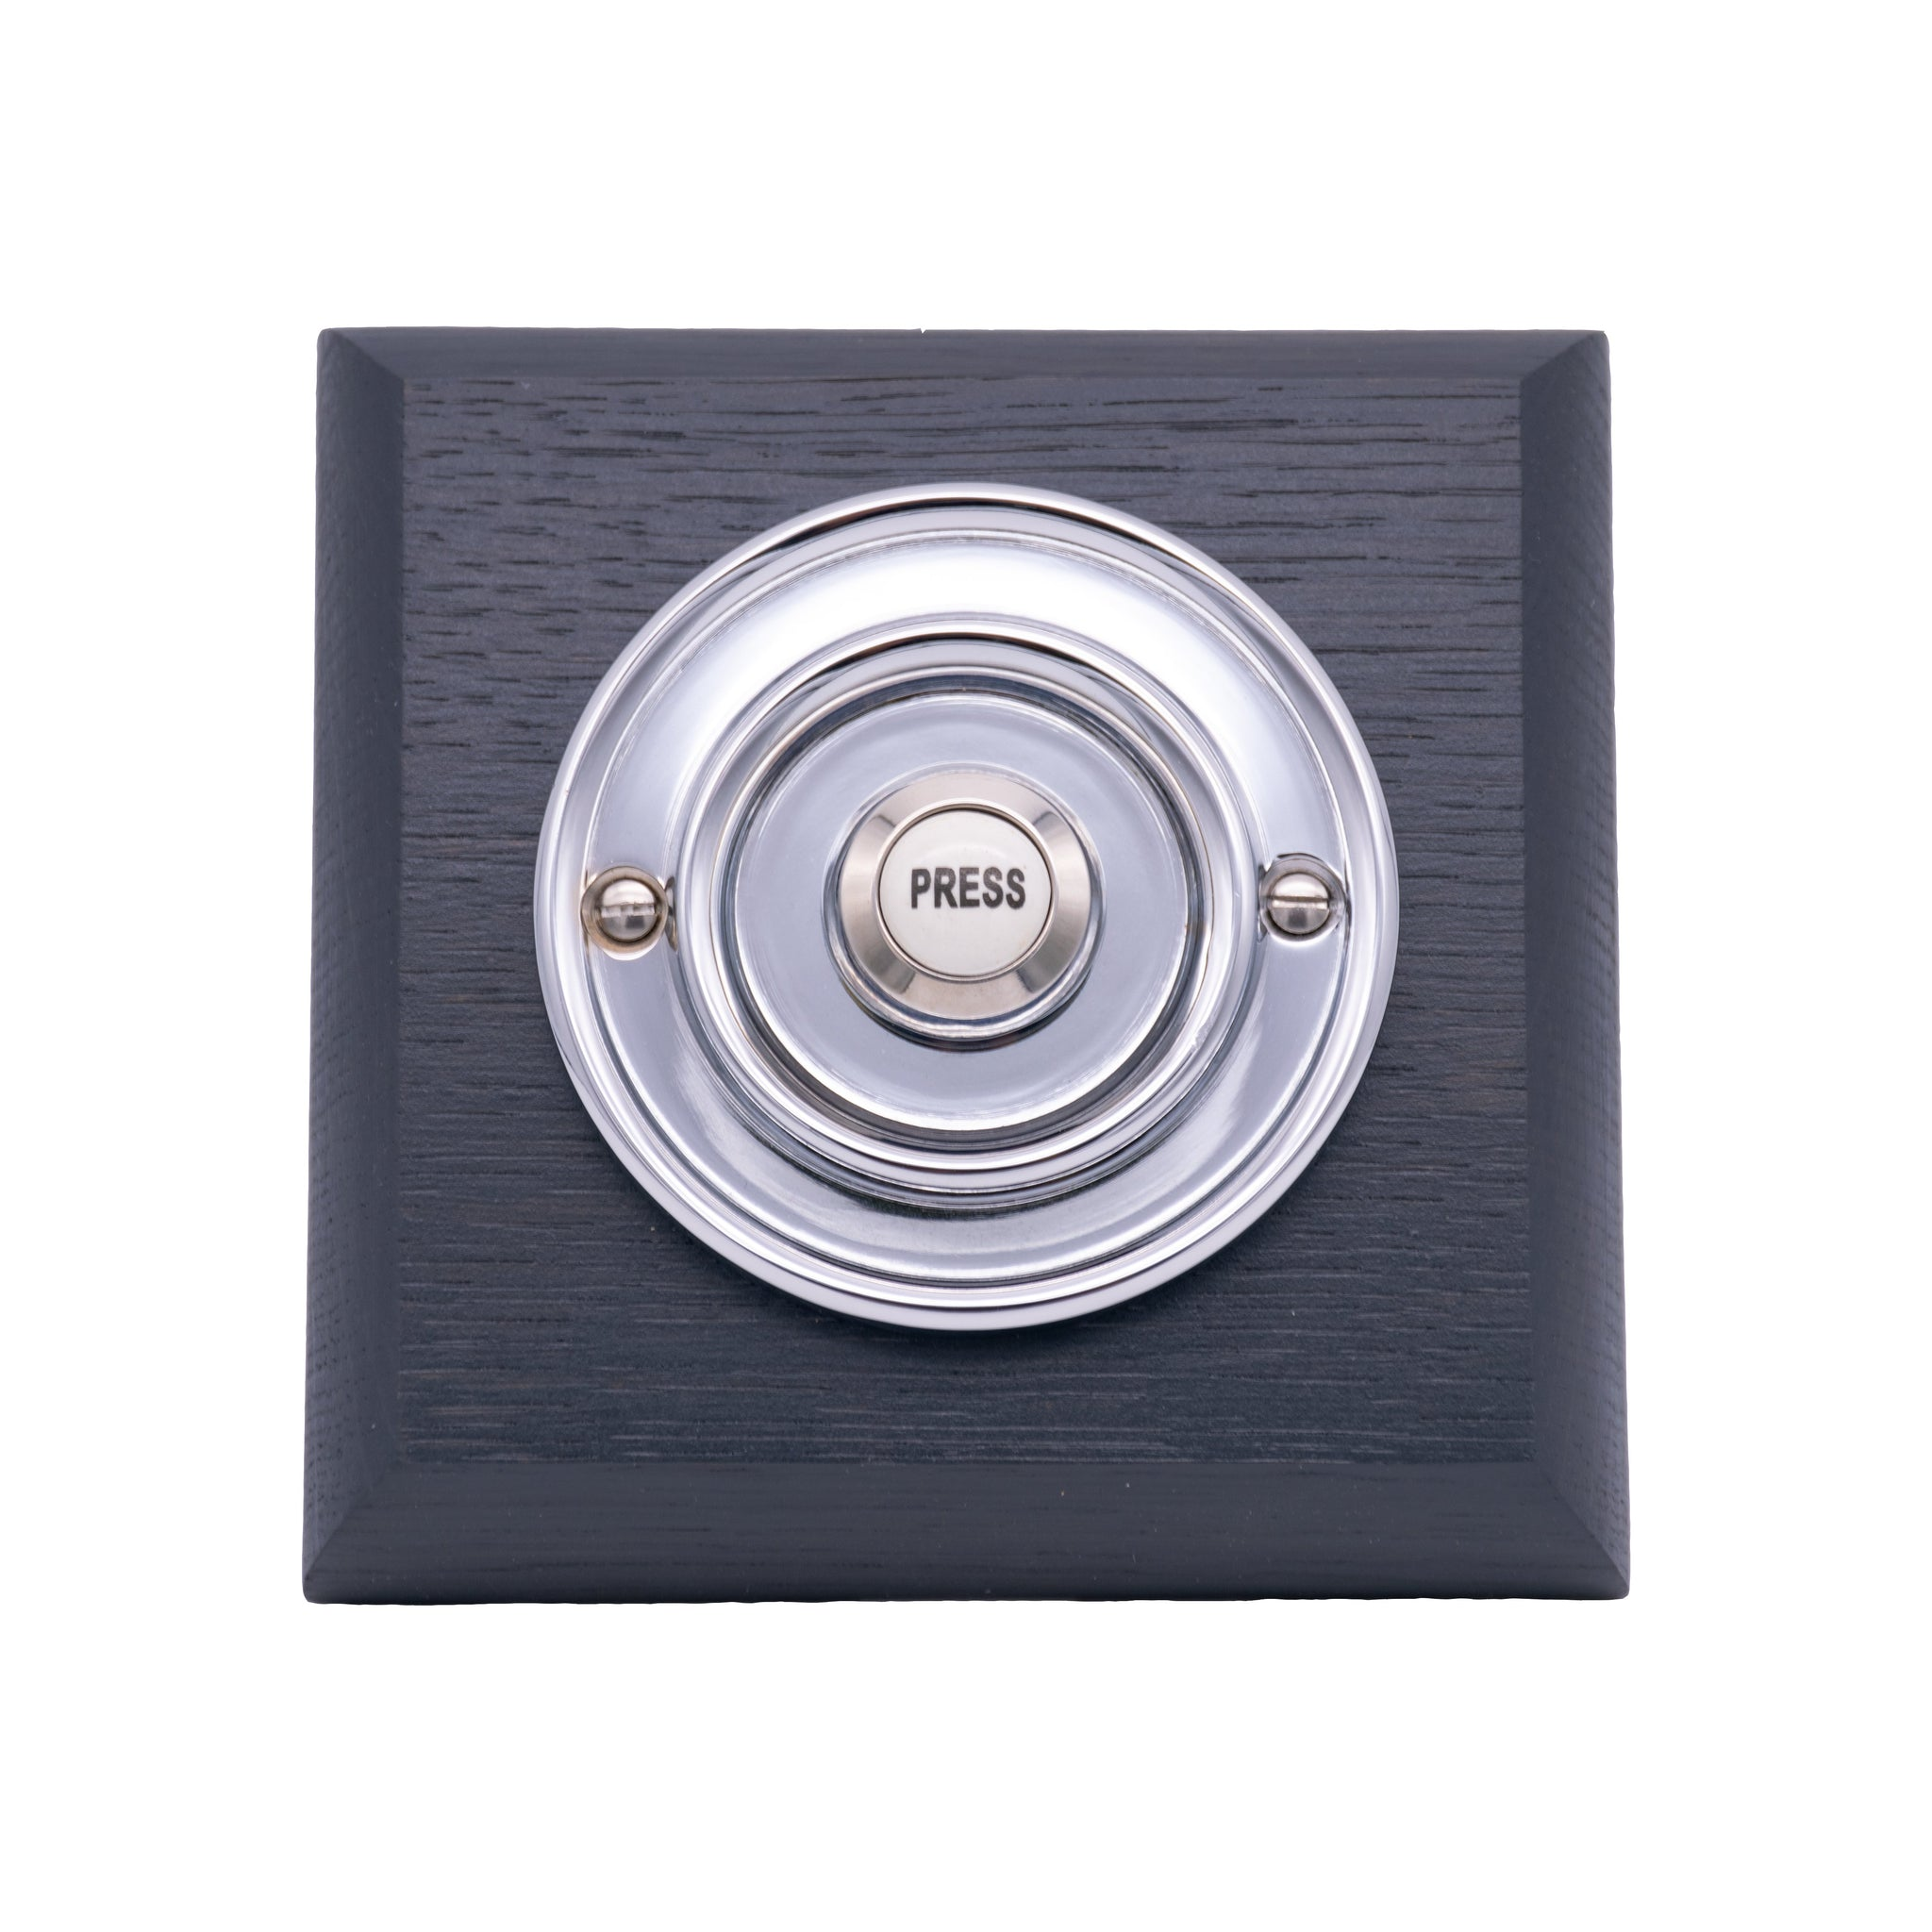 Byron 100m Wireless Period Plug-in Doorbell kit - Chrome on Grey Oak Plinth